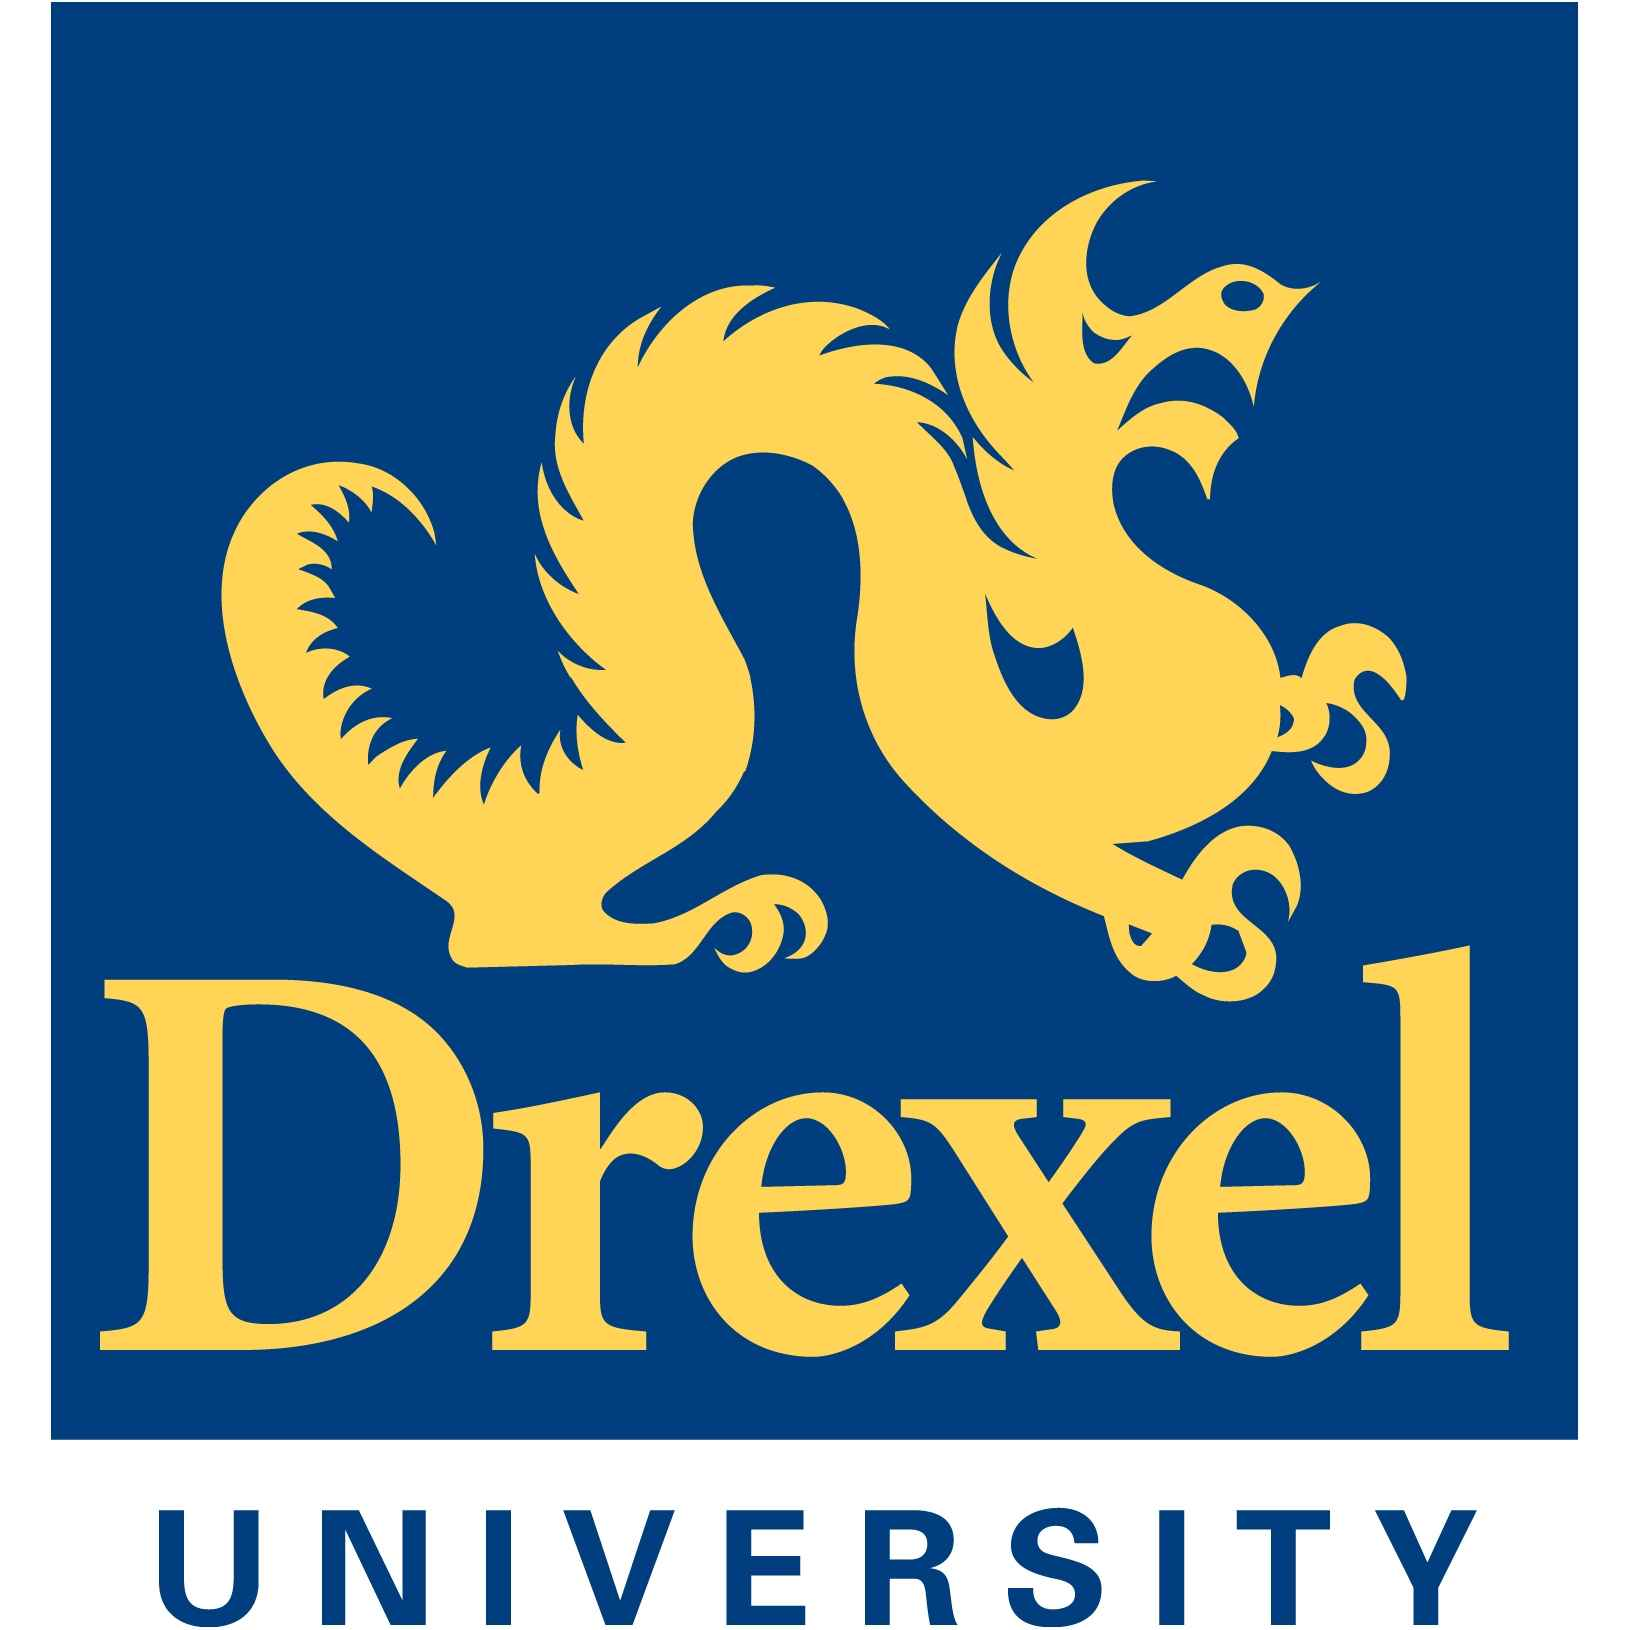 Drexel University Logo [PDF] Vector EPS Free Download, Logo, Icons, Brand Emblems